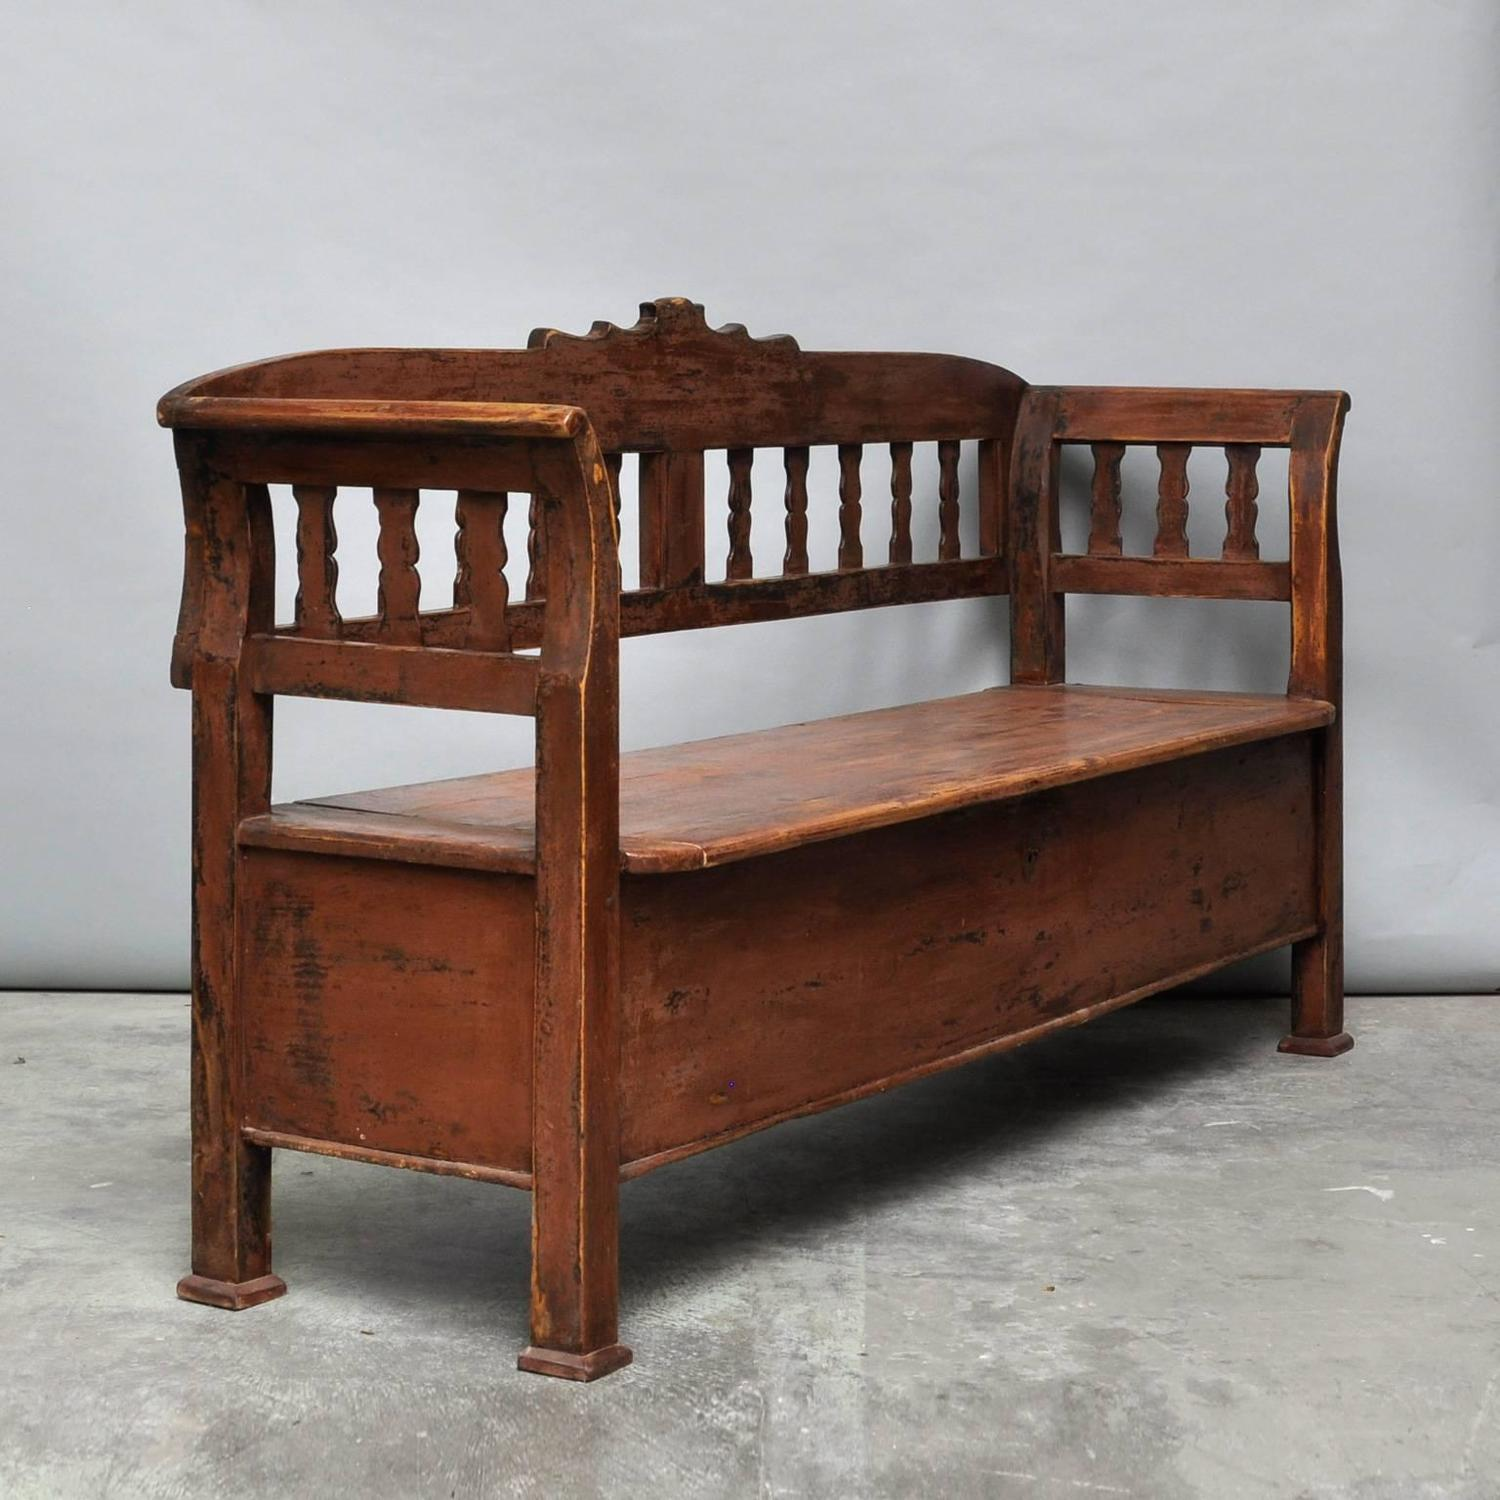 antique storage bench with original paint circa 1920 for sale at 1stdibs. Black Bedroom Furniture Sets. Home Design Ideas